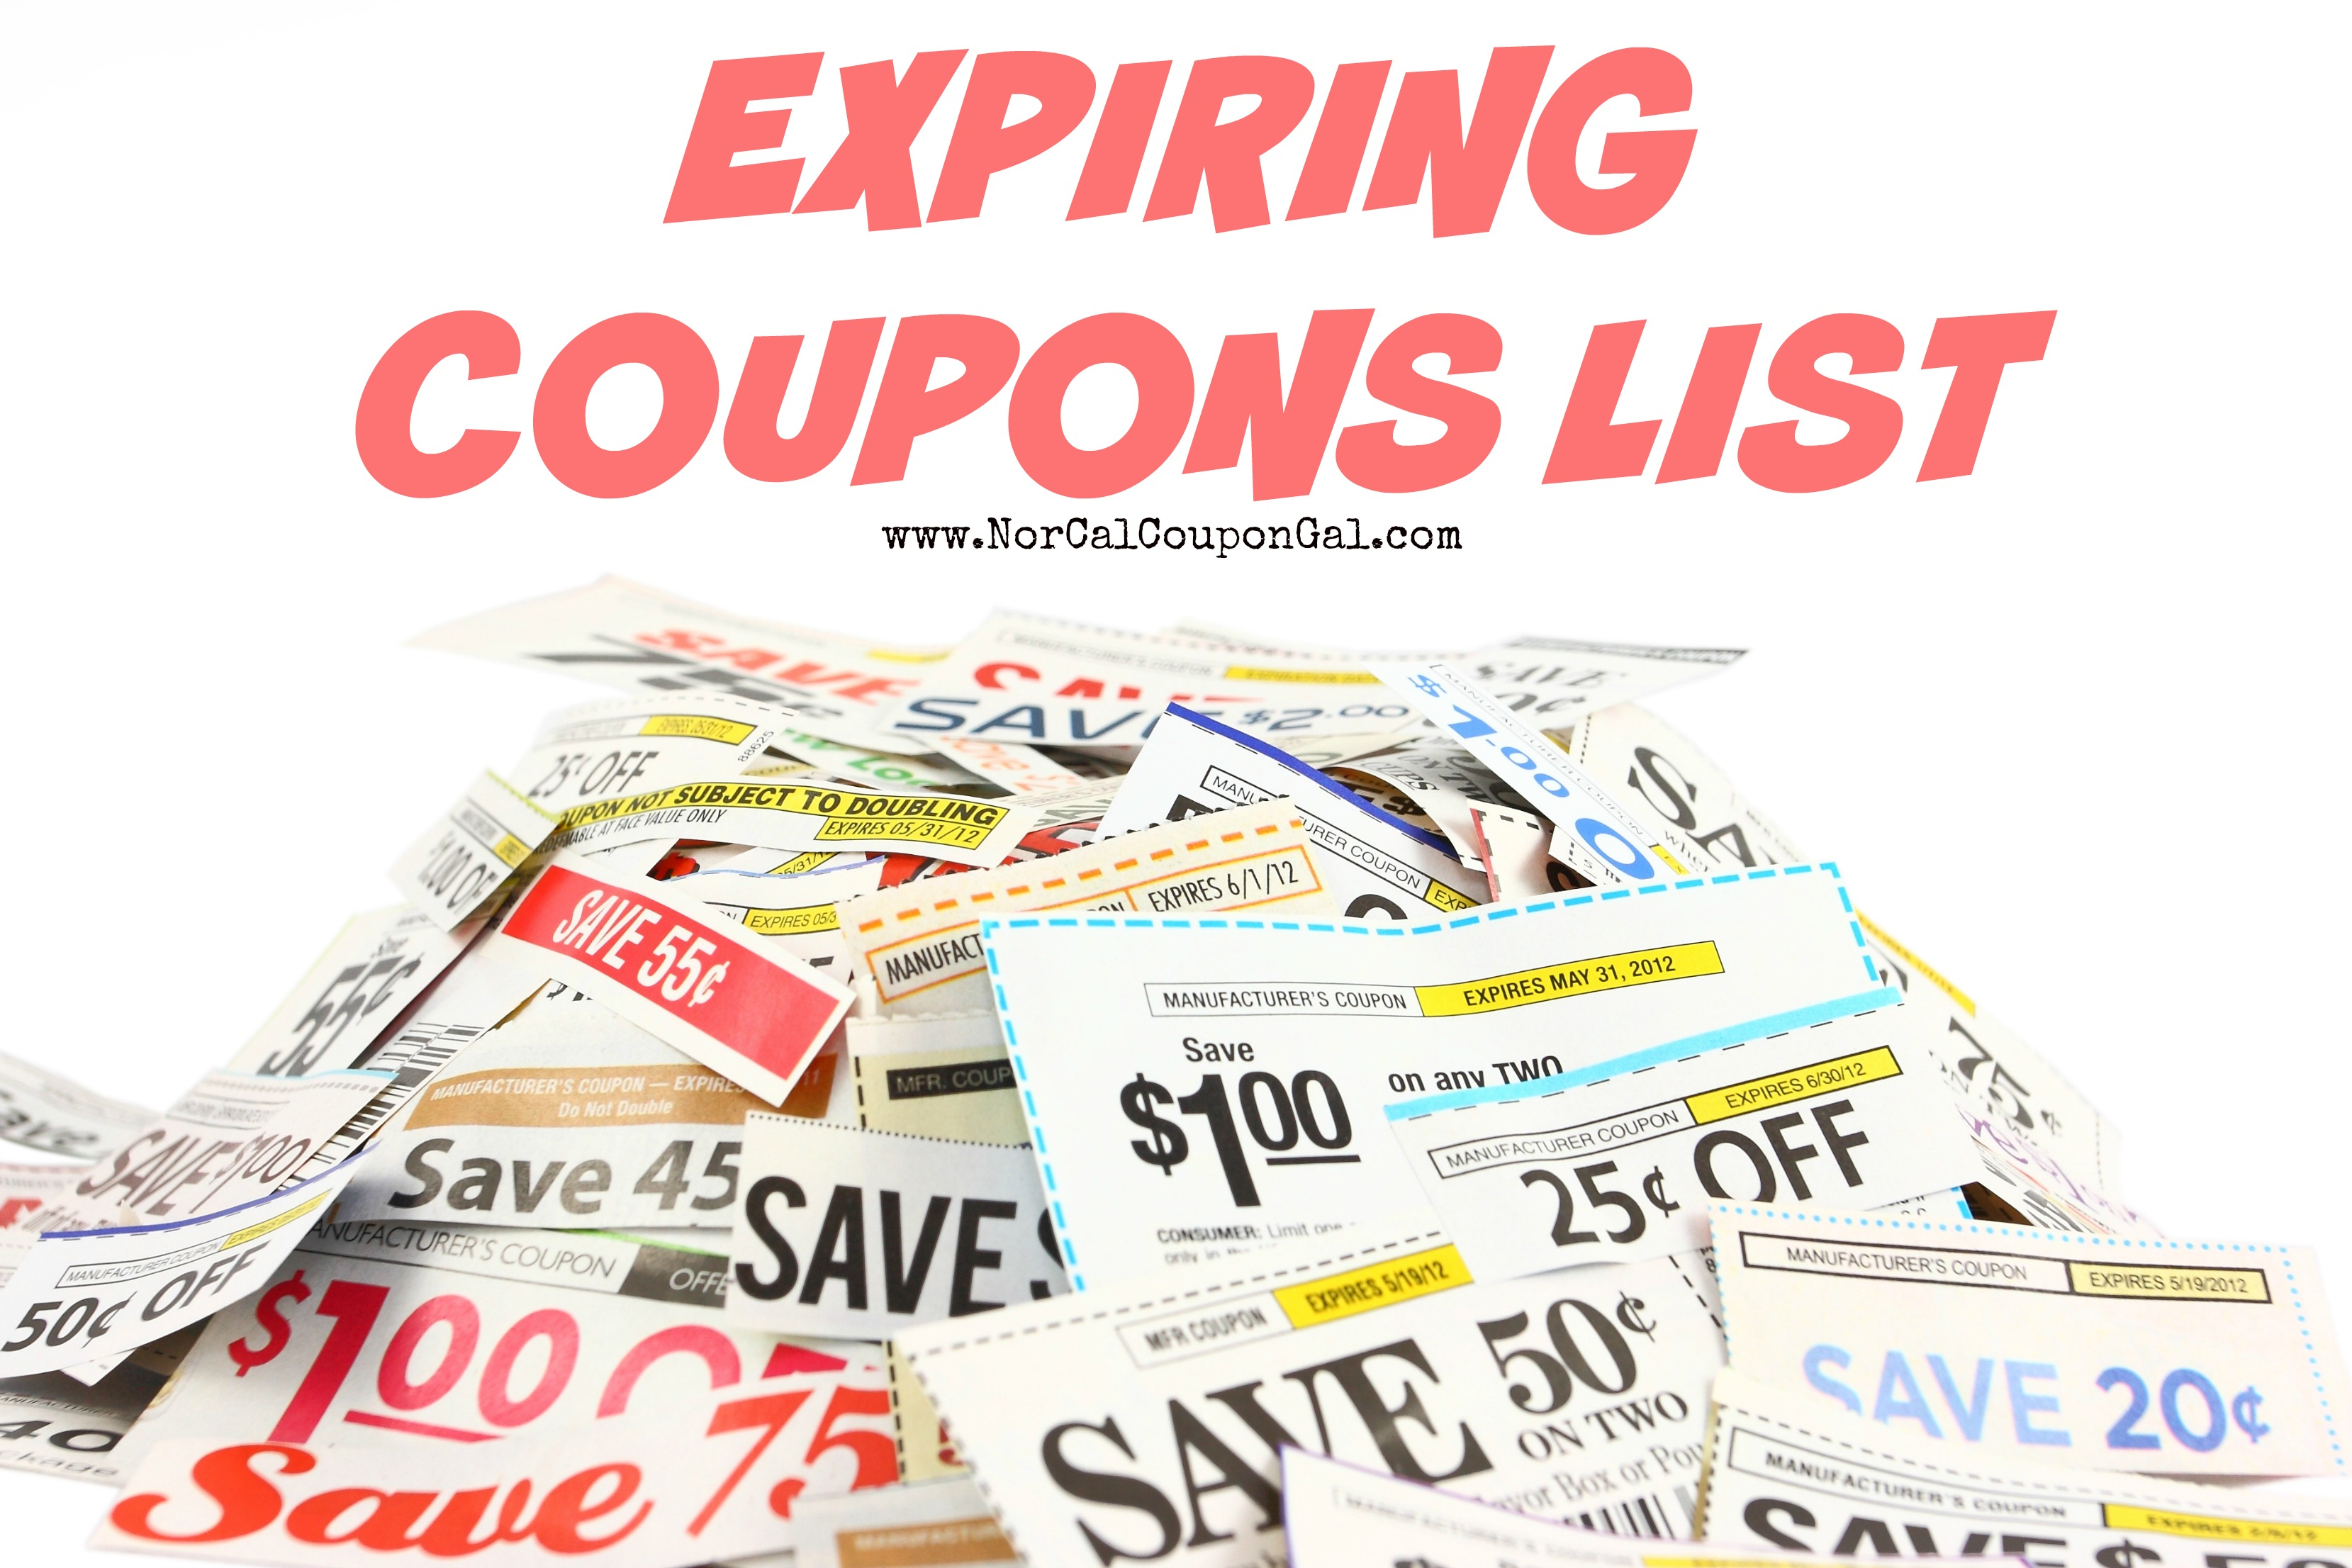 photograph about Trader Joe's Printable Coupons titled NorCal Coupon Gal - Discount coupons, Promotions Even further In just Northern California